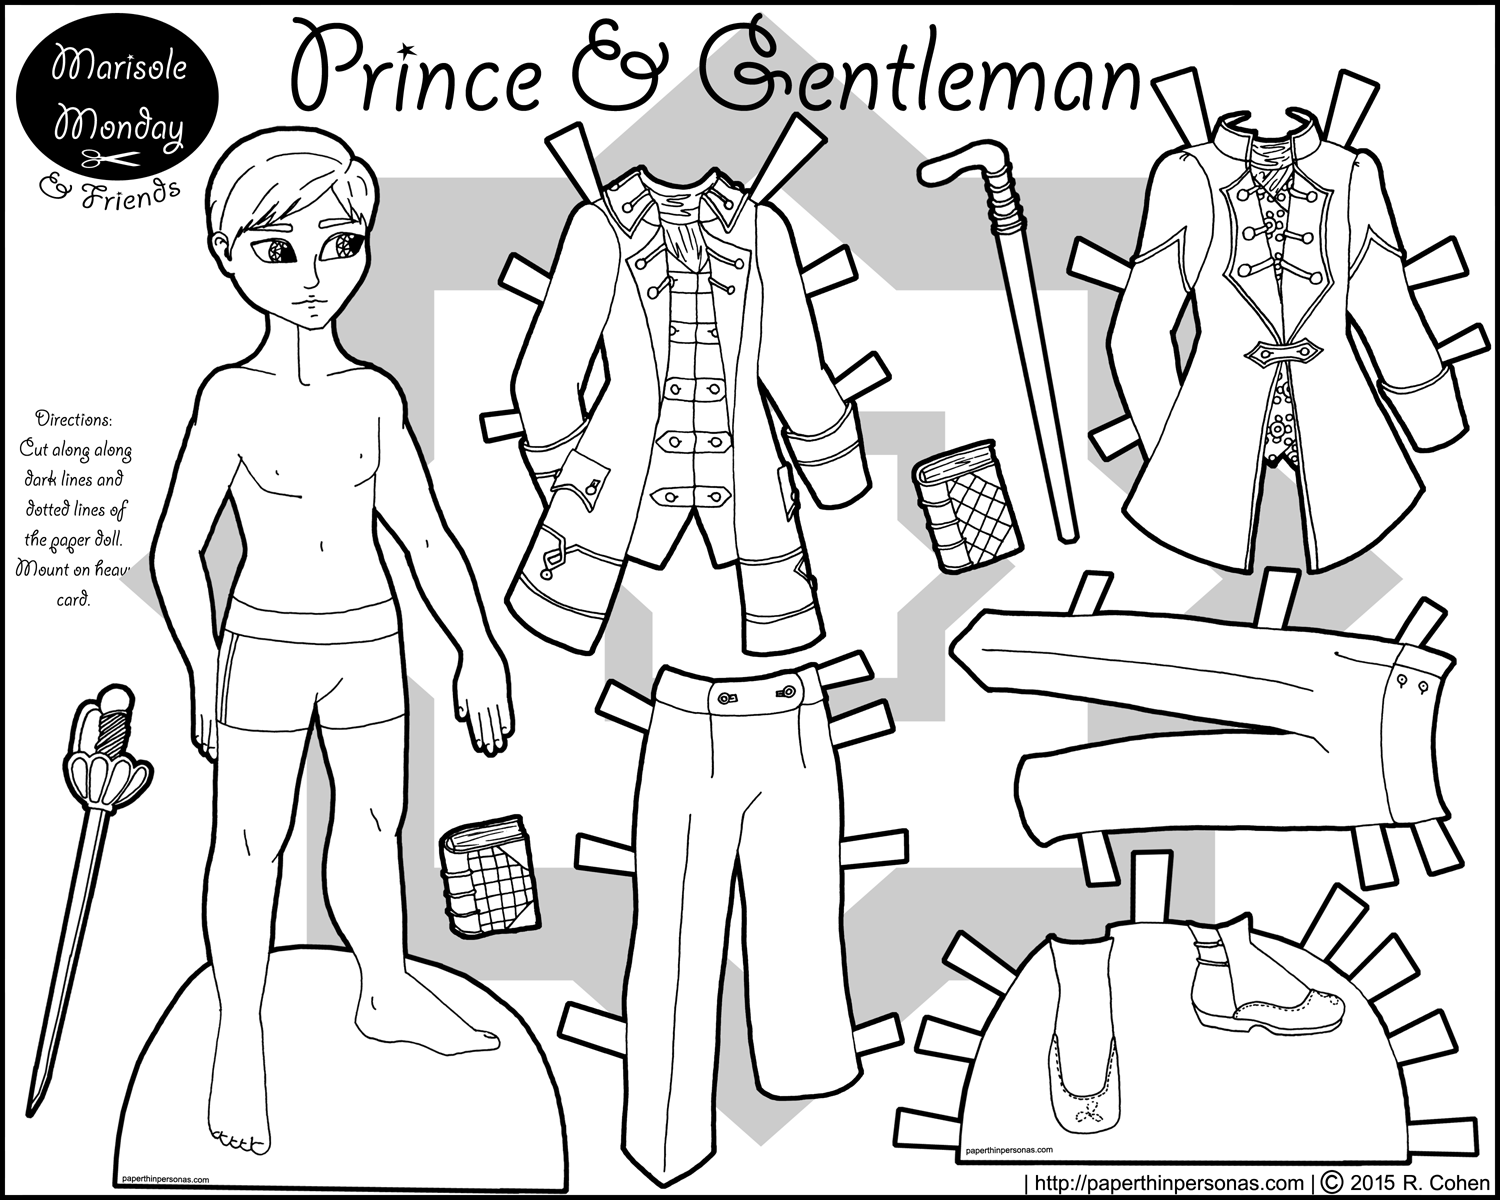 marisole monday friends archives page 6 of 27 paper thin personas coloring pages paper. Black Bedroom Furniture Sets. Home Design Ideas